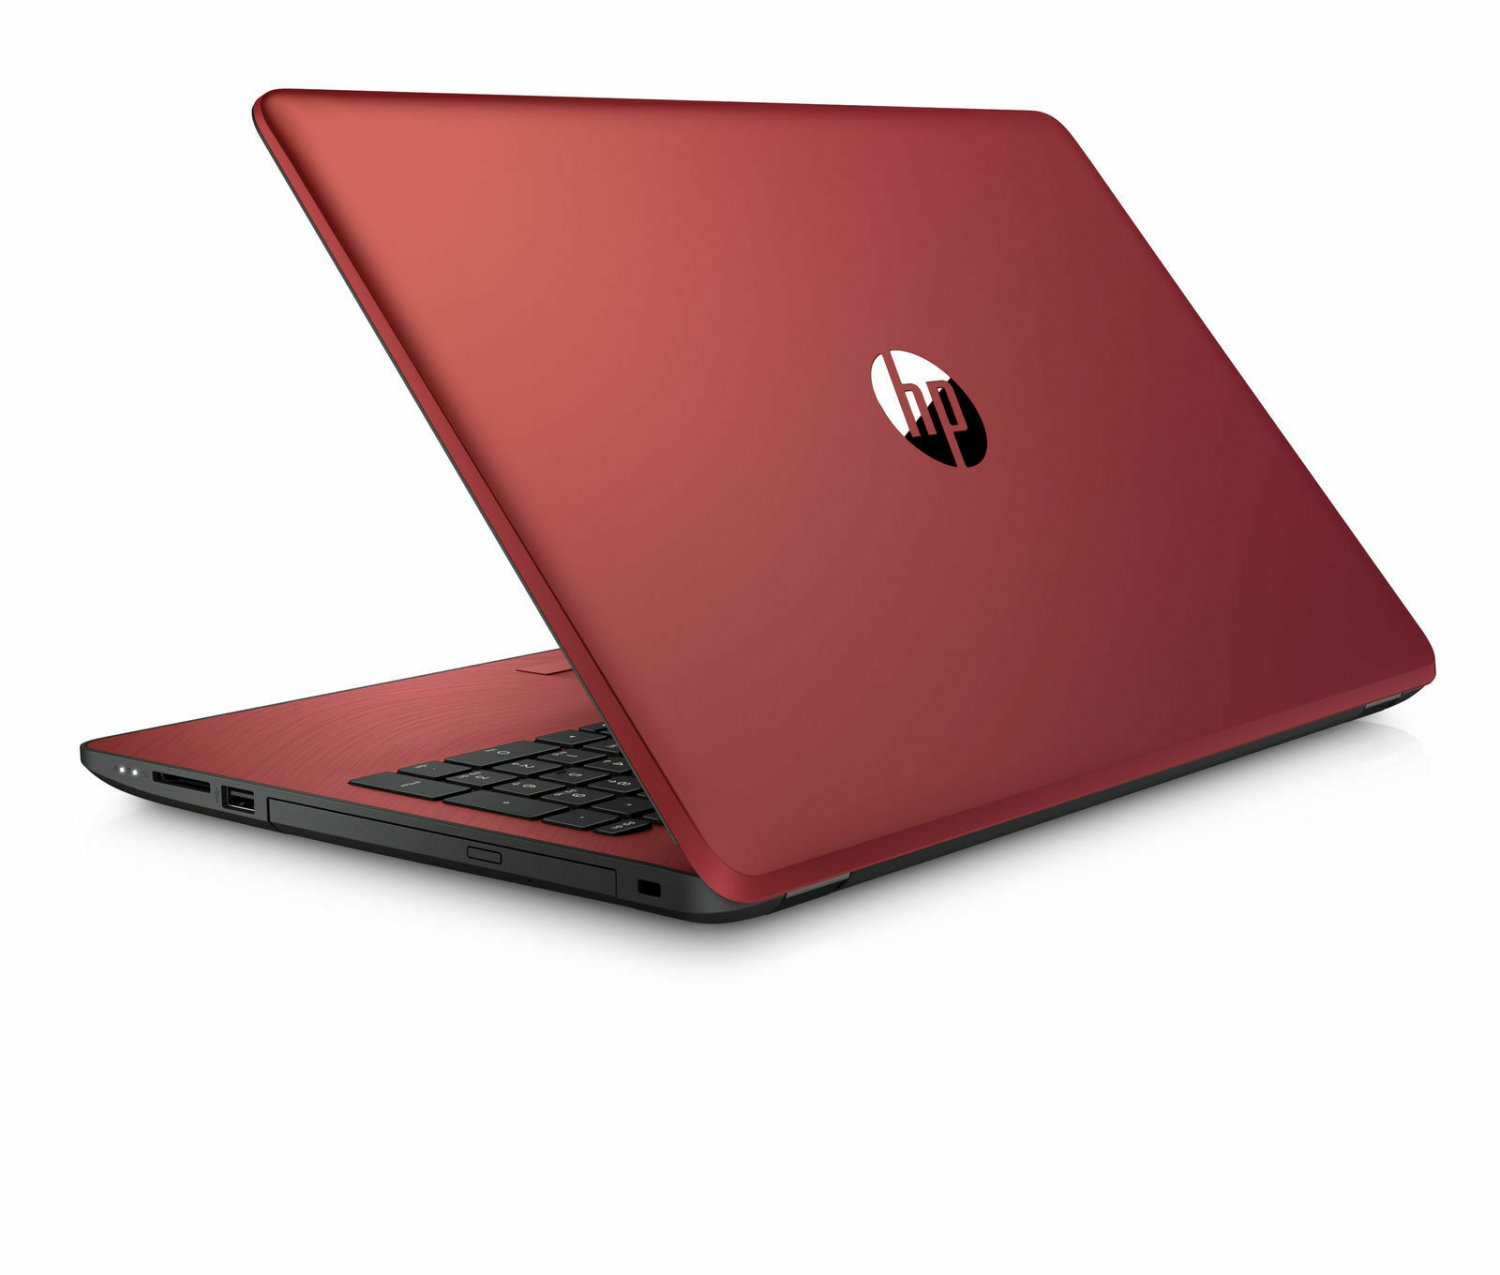 "HP Pavilion 15-bs134wm 15.6"" Notebook Intel Pentium Gold 500GB HDD 4GB RAM DVD Webcam Win 10 - Red"